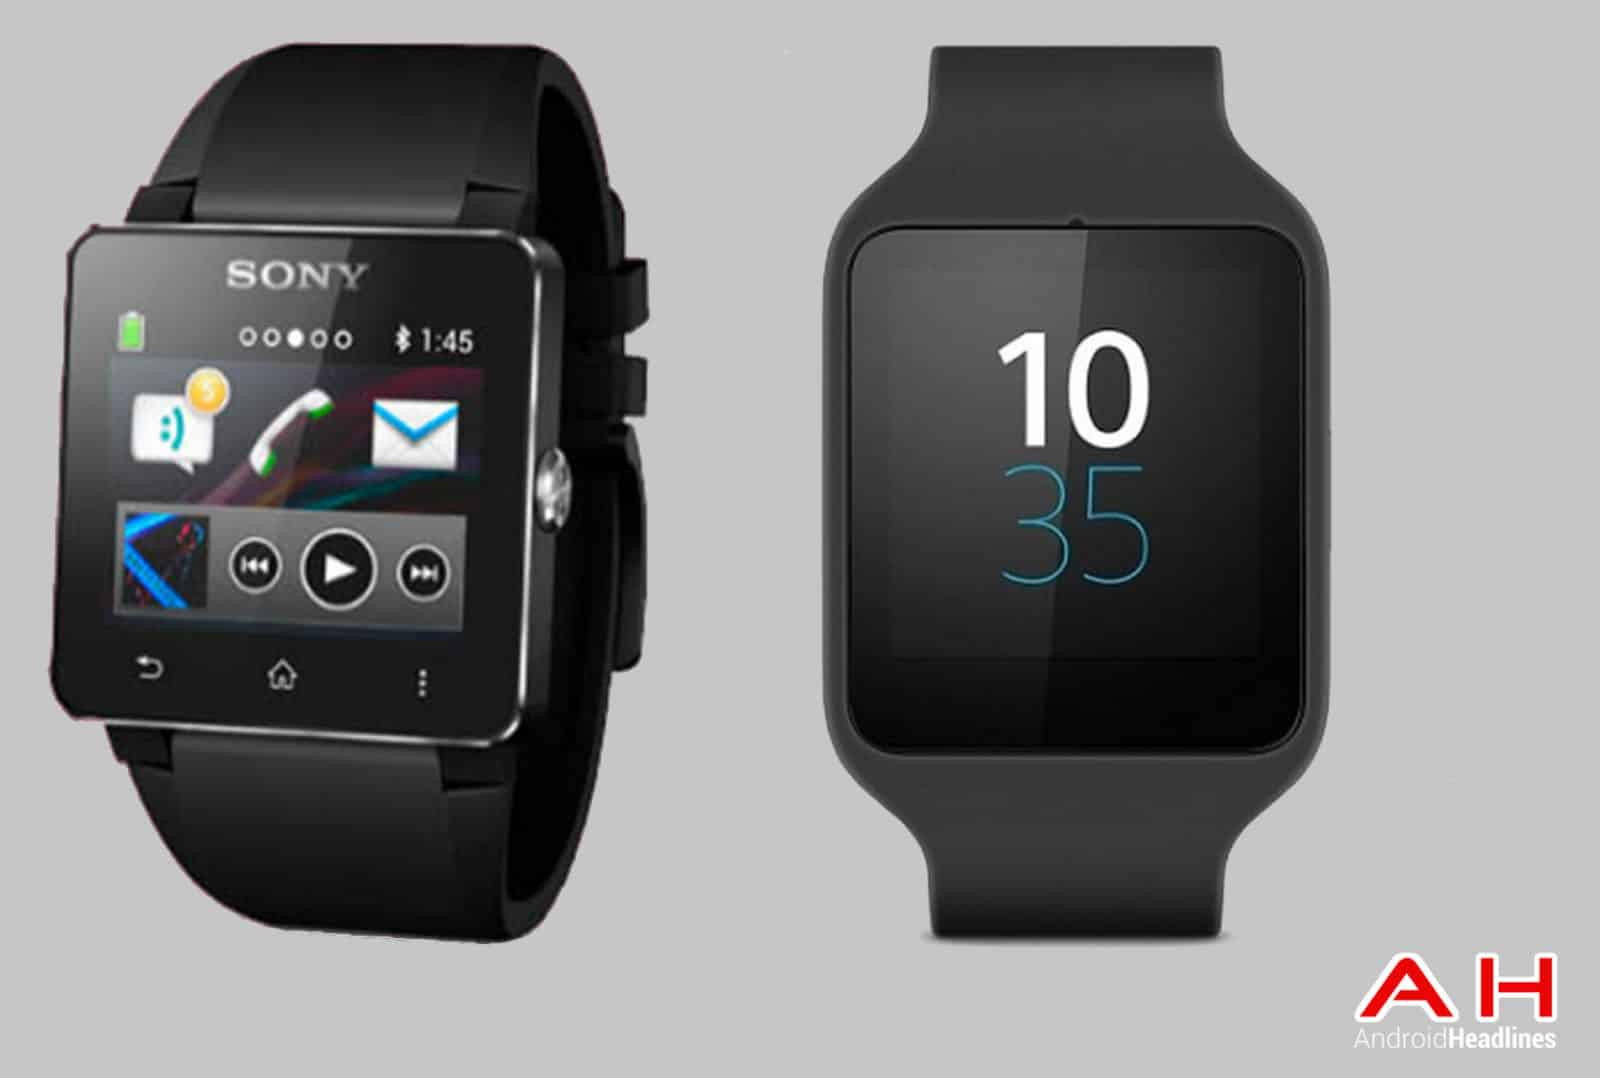 smartwatch comparisons sony smartwatch 2 vs sony smartwatch 3 android news. Black Bedroom Furniture Sets. Home Design Ideas